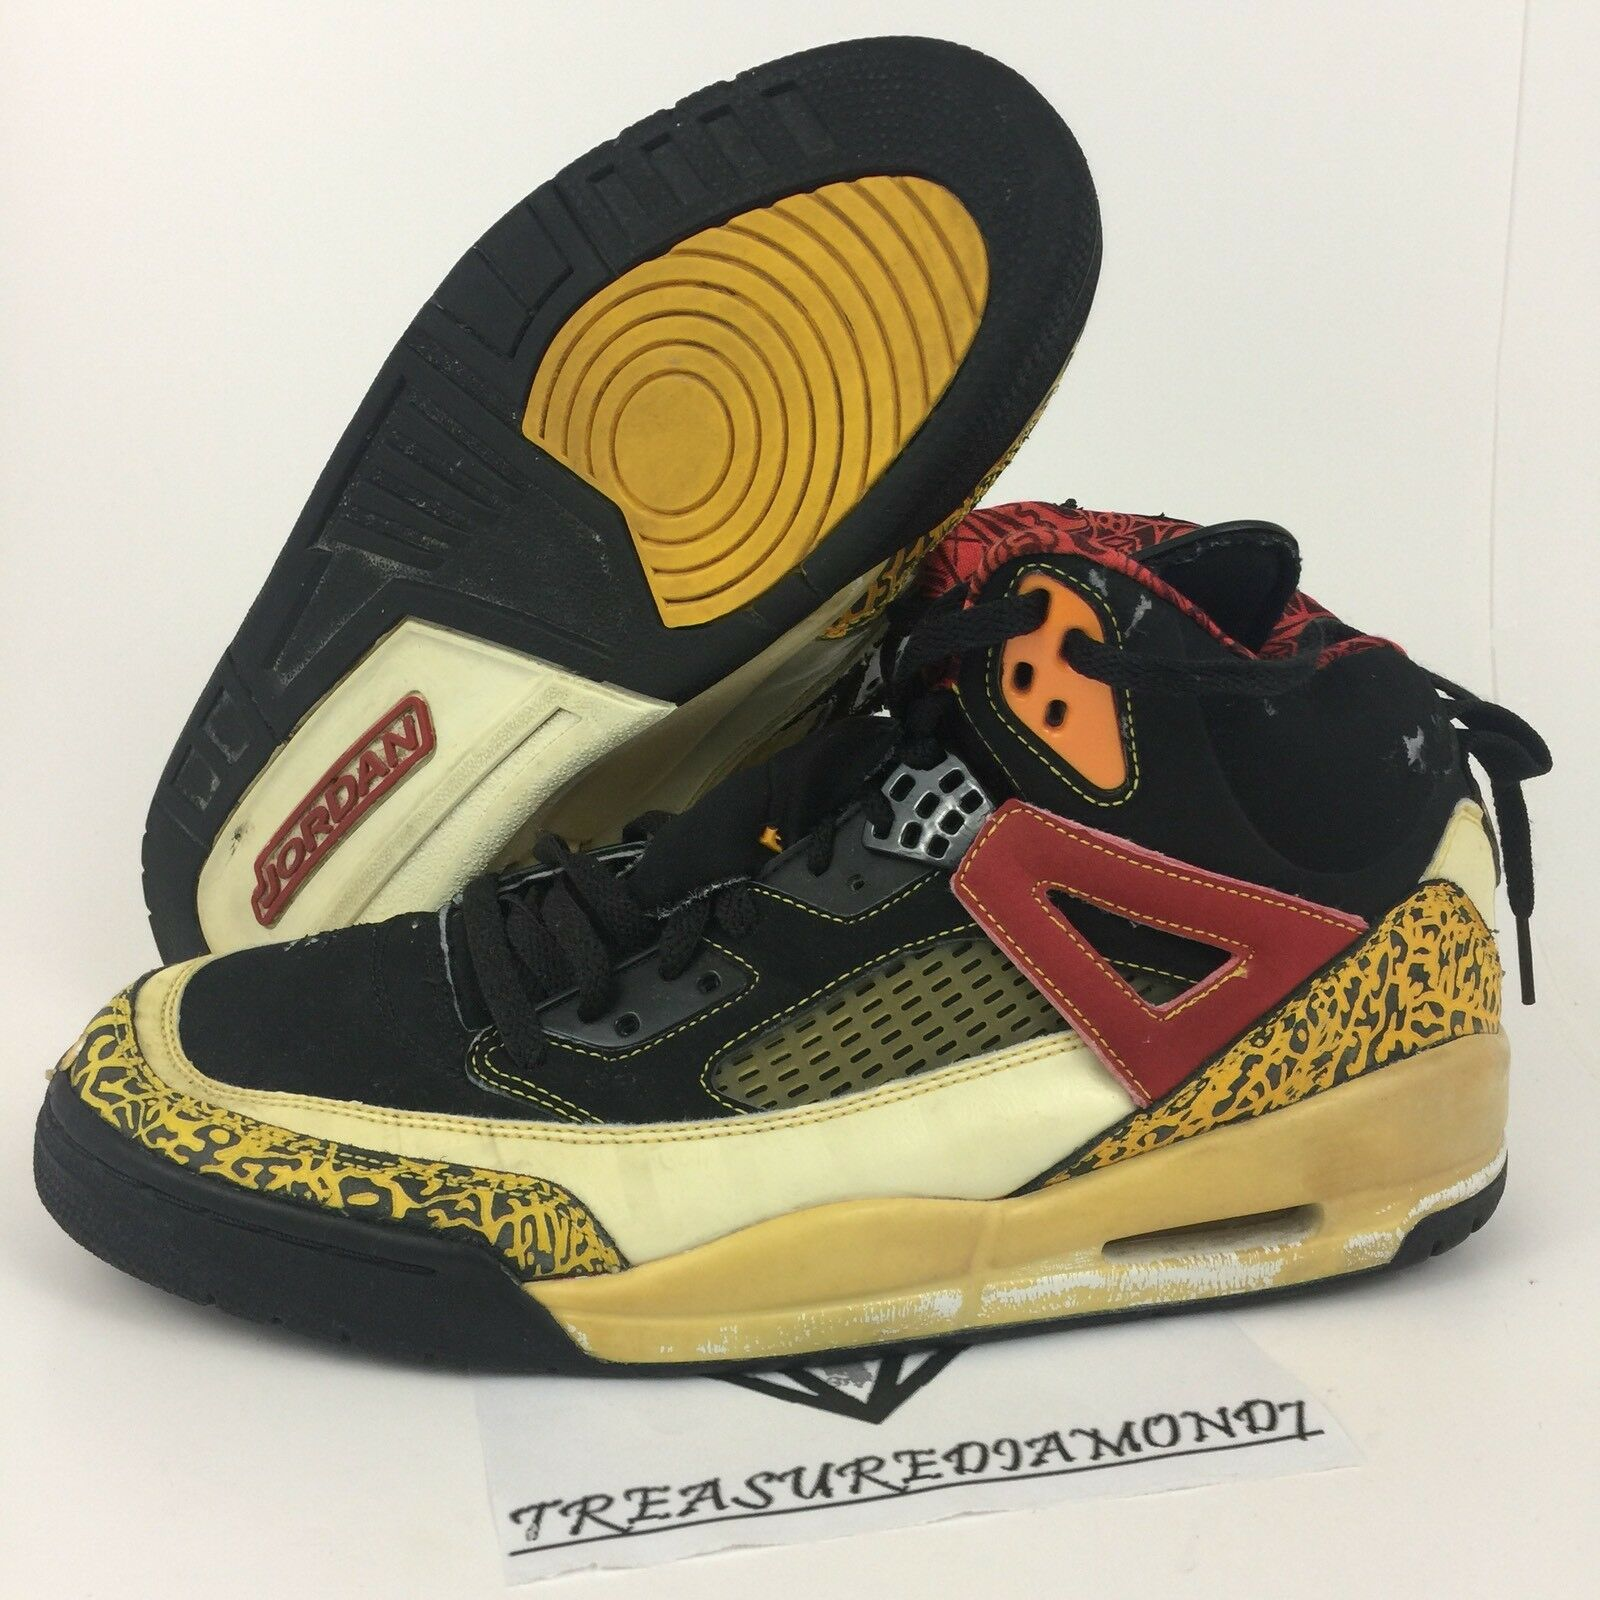 big sale 72034 23d03 ... purchase nike air jordan 07 spizike king county negro 315371071 taxi  rojo oro blanco 315371071 negro